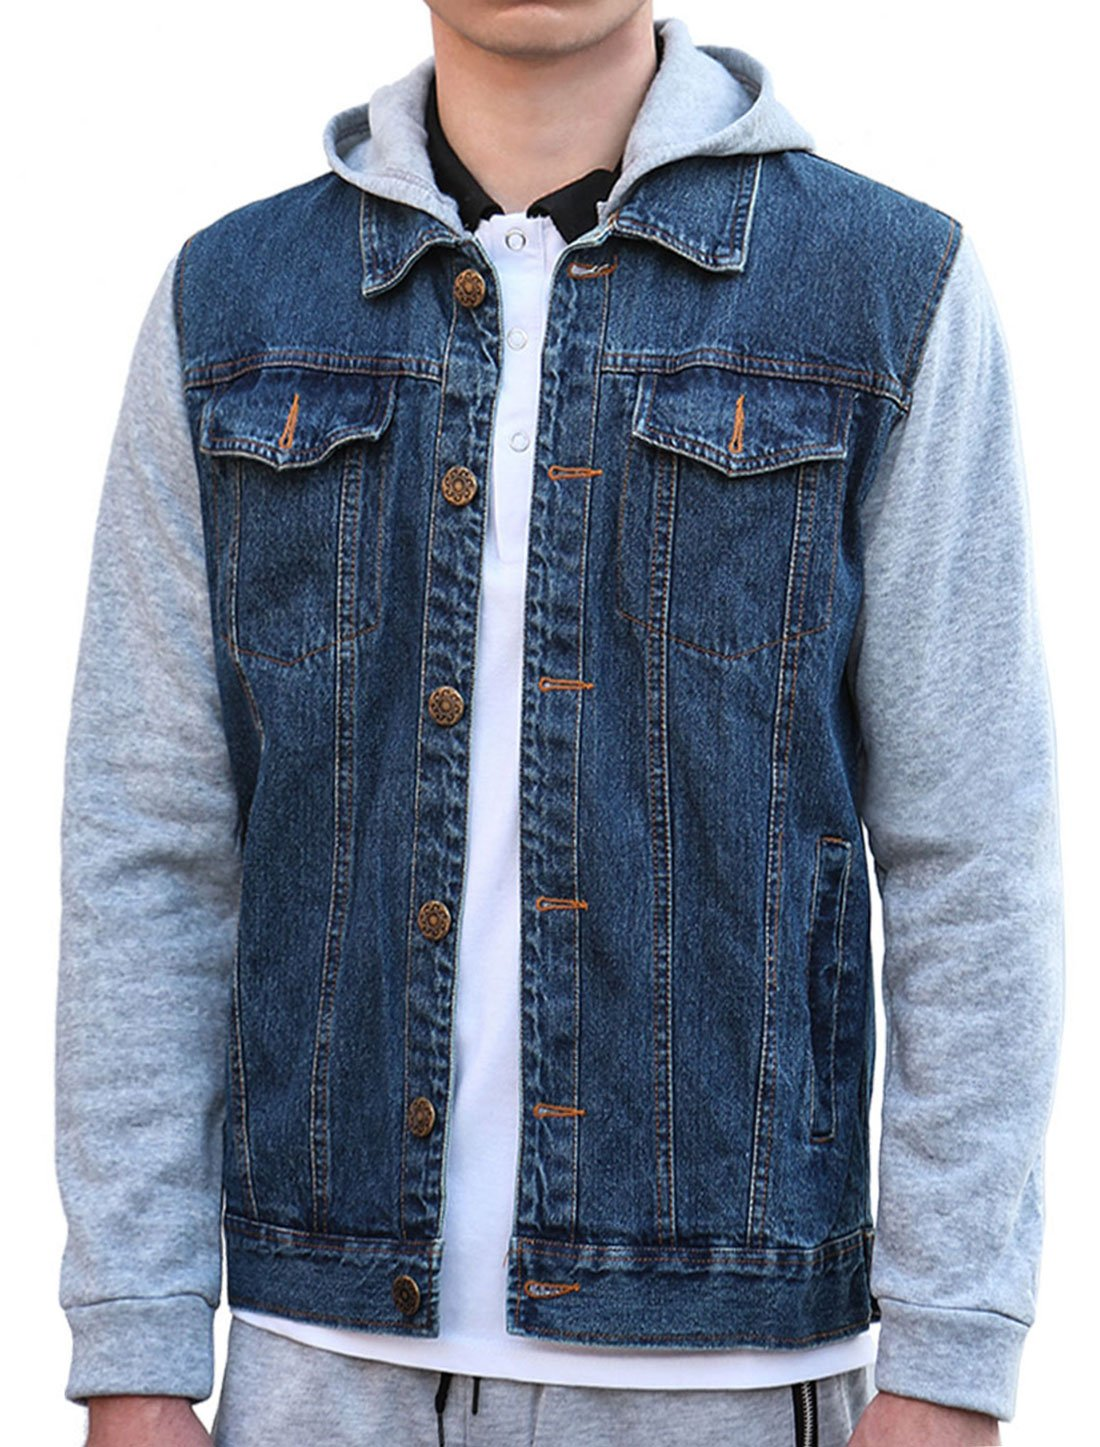 Allegra K Men Single Breasted Paneled Long Sleeves Denim Jacket w Removable Hood S Blue by uxcell